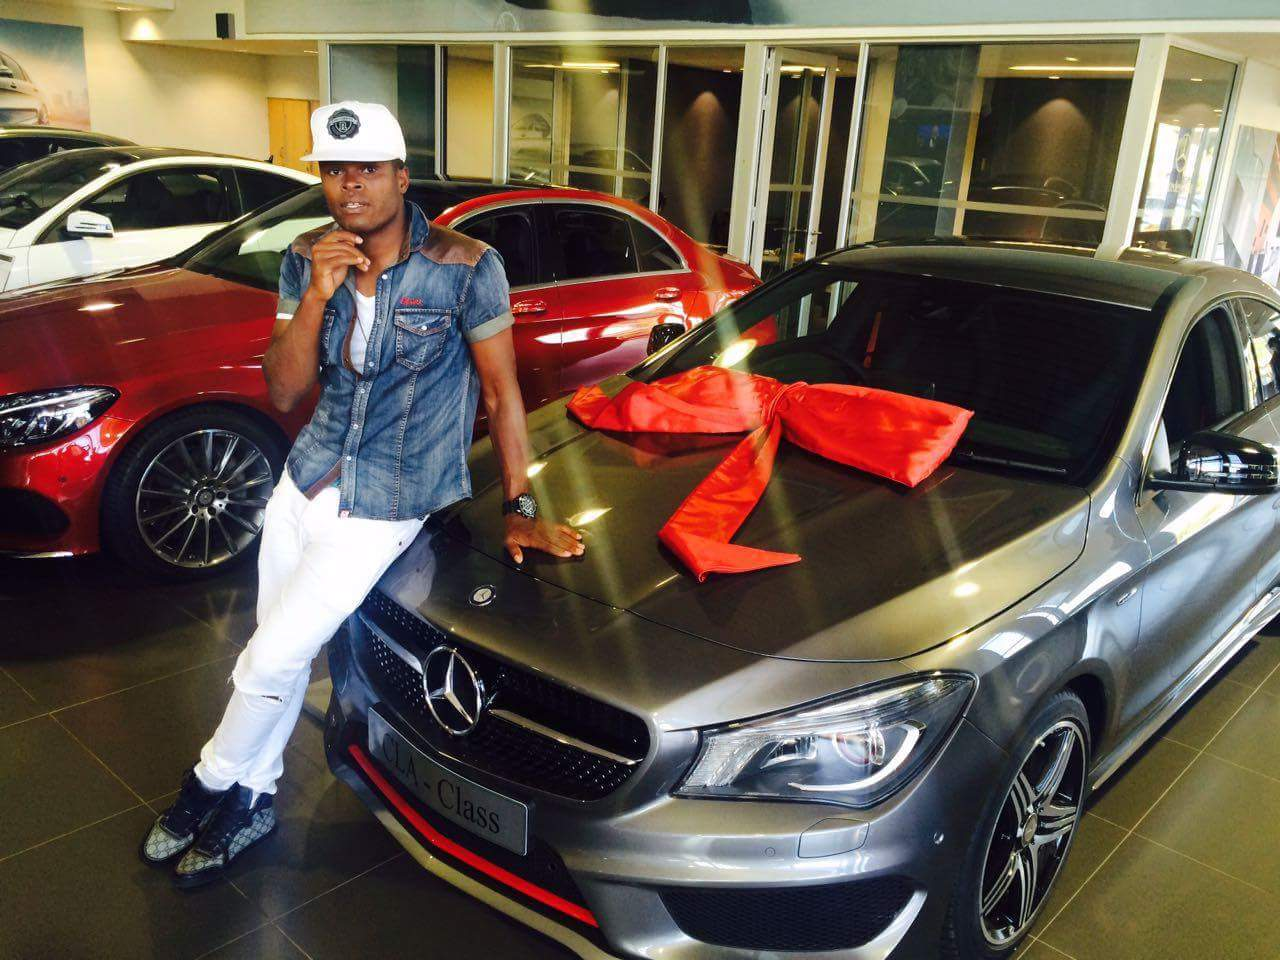 PICS: Chivhayo gets Mercedes Benz for Katsande